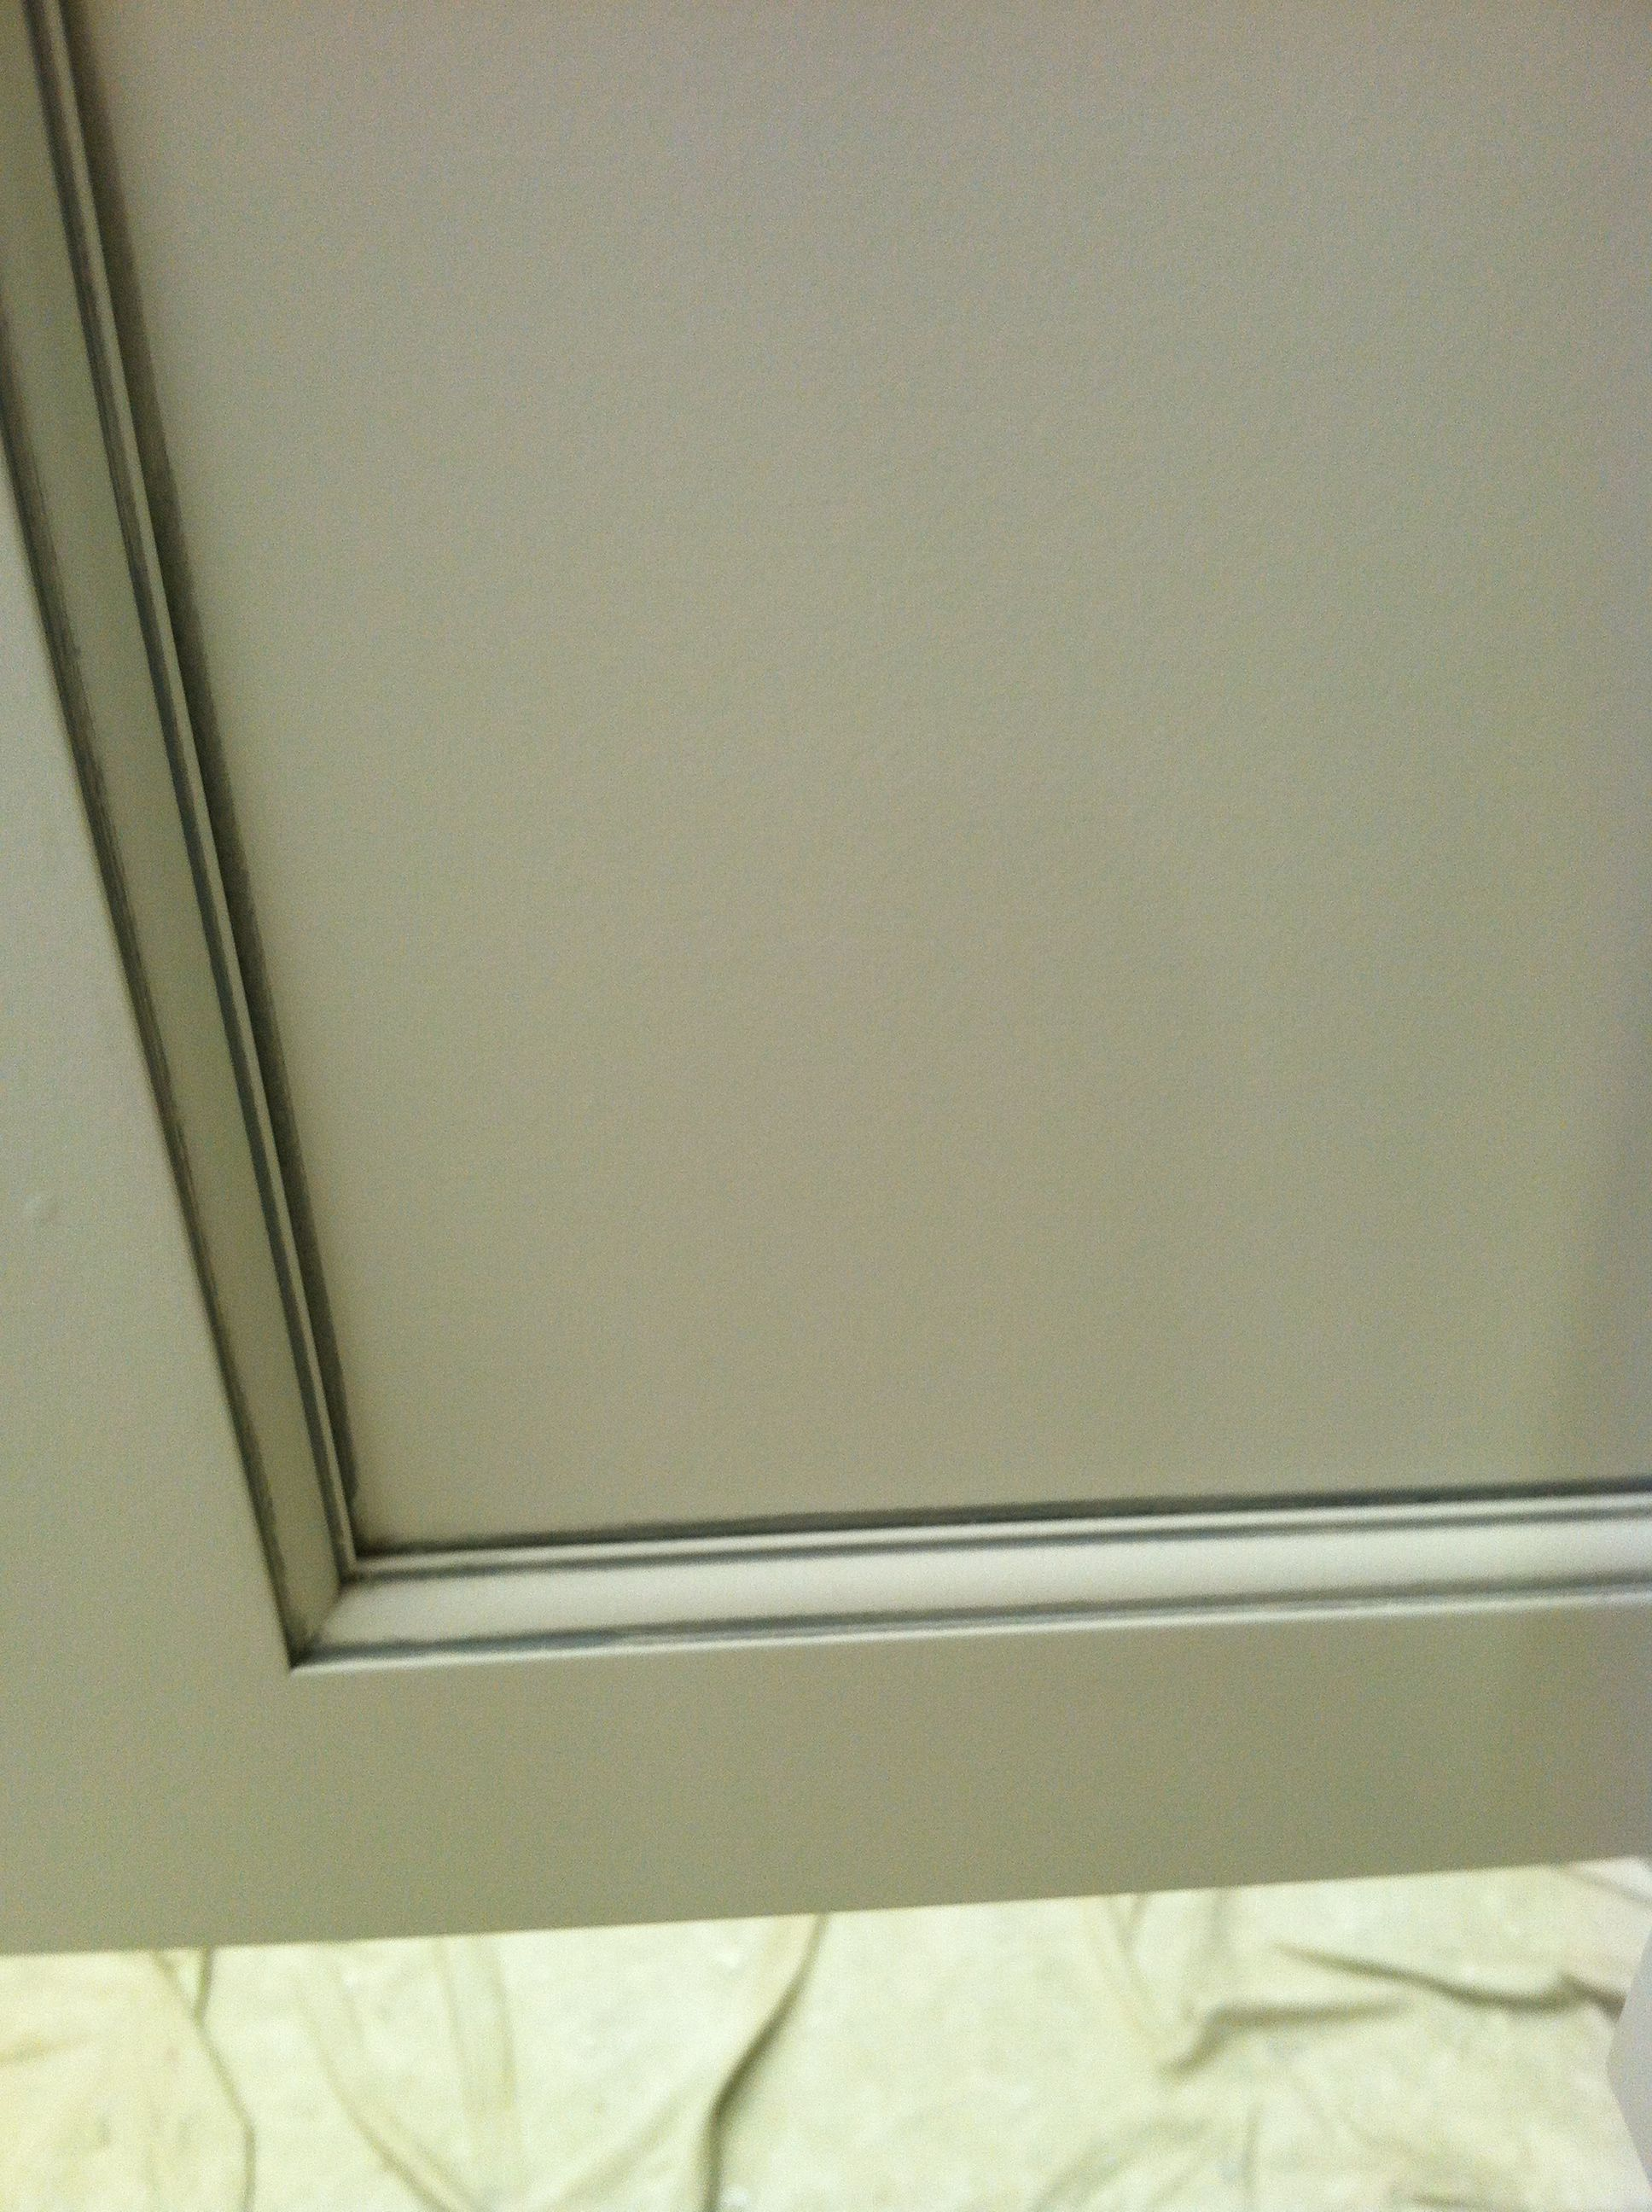 Here is a close up of the glazed cabinets